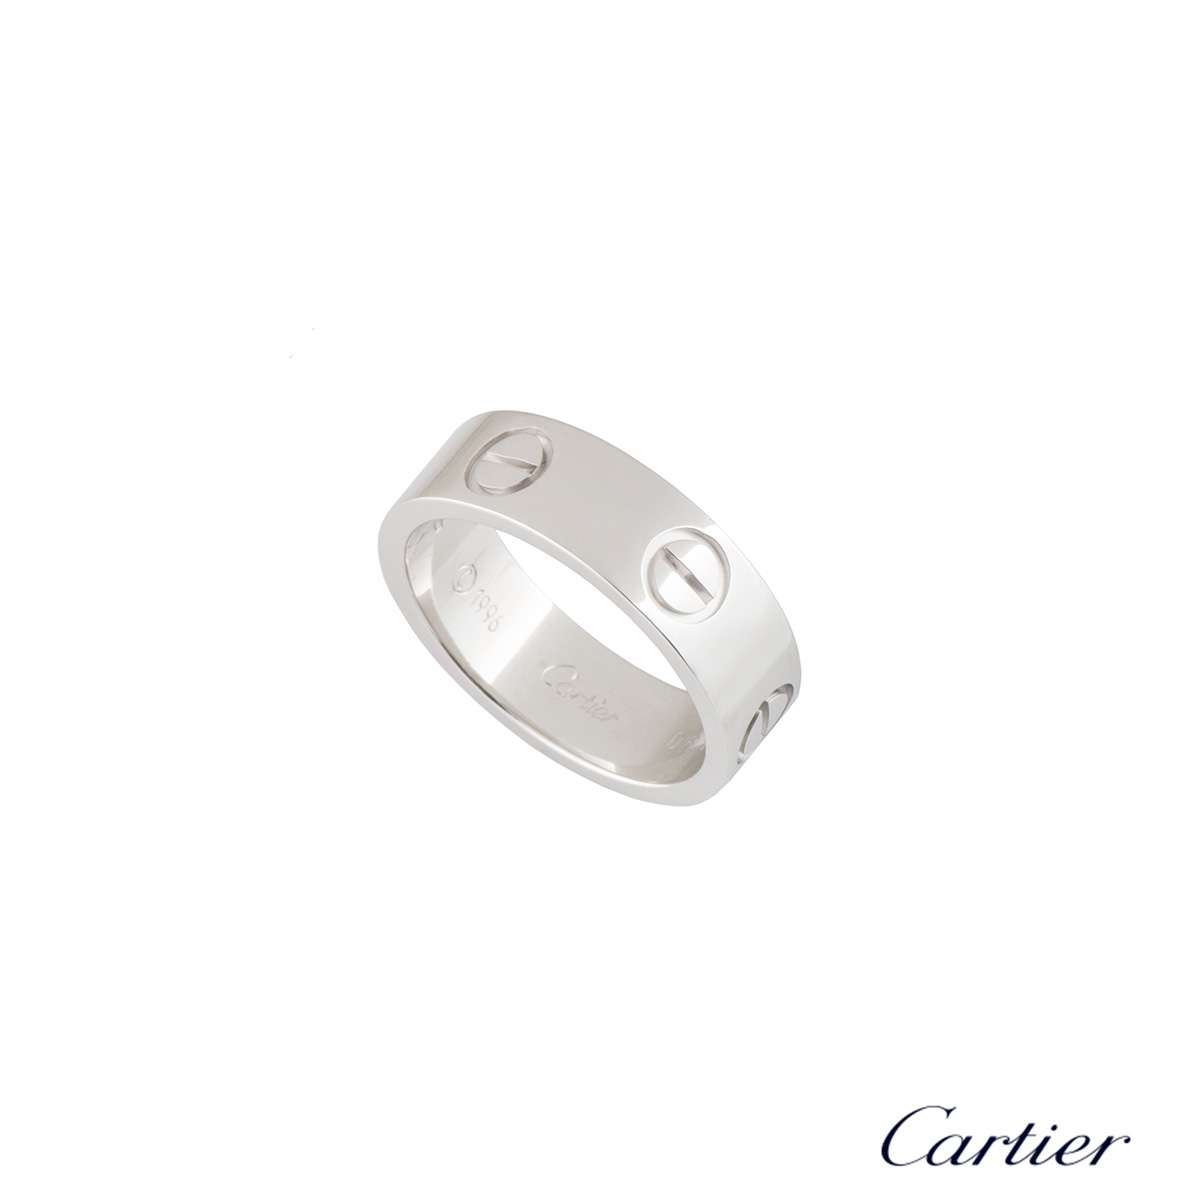 Cartier White Gold Plain Love Ring